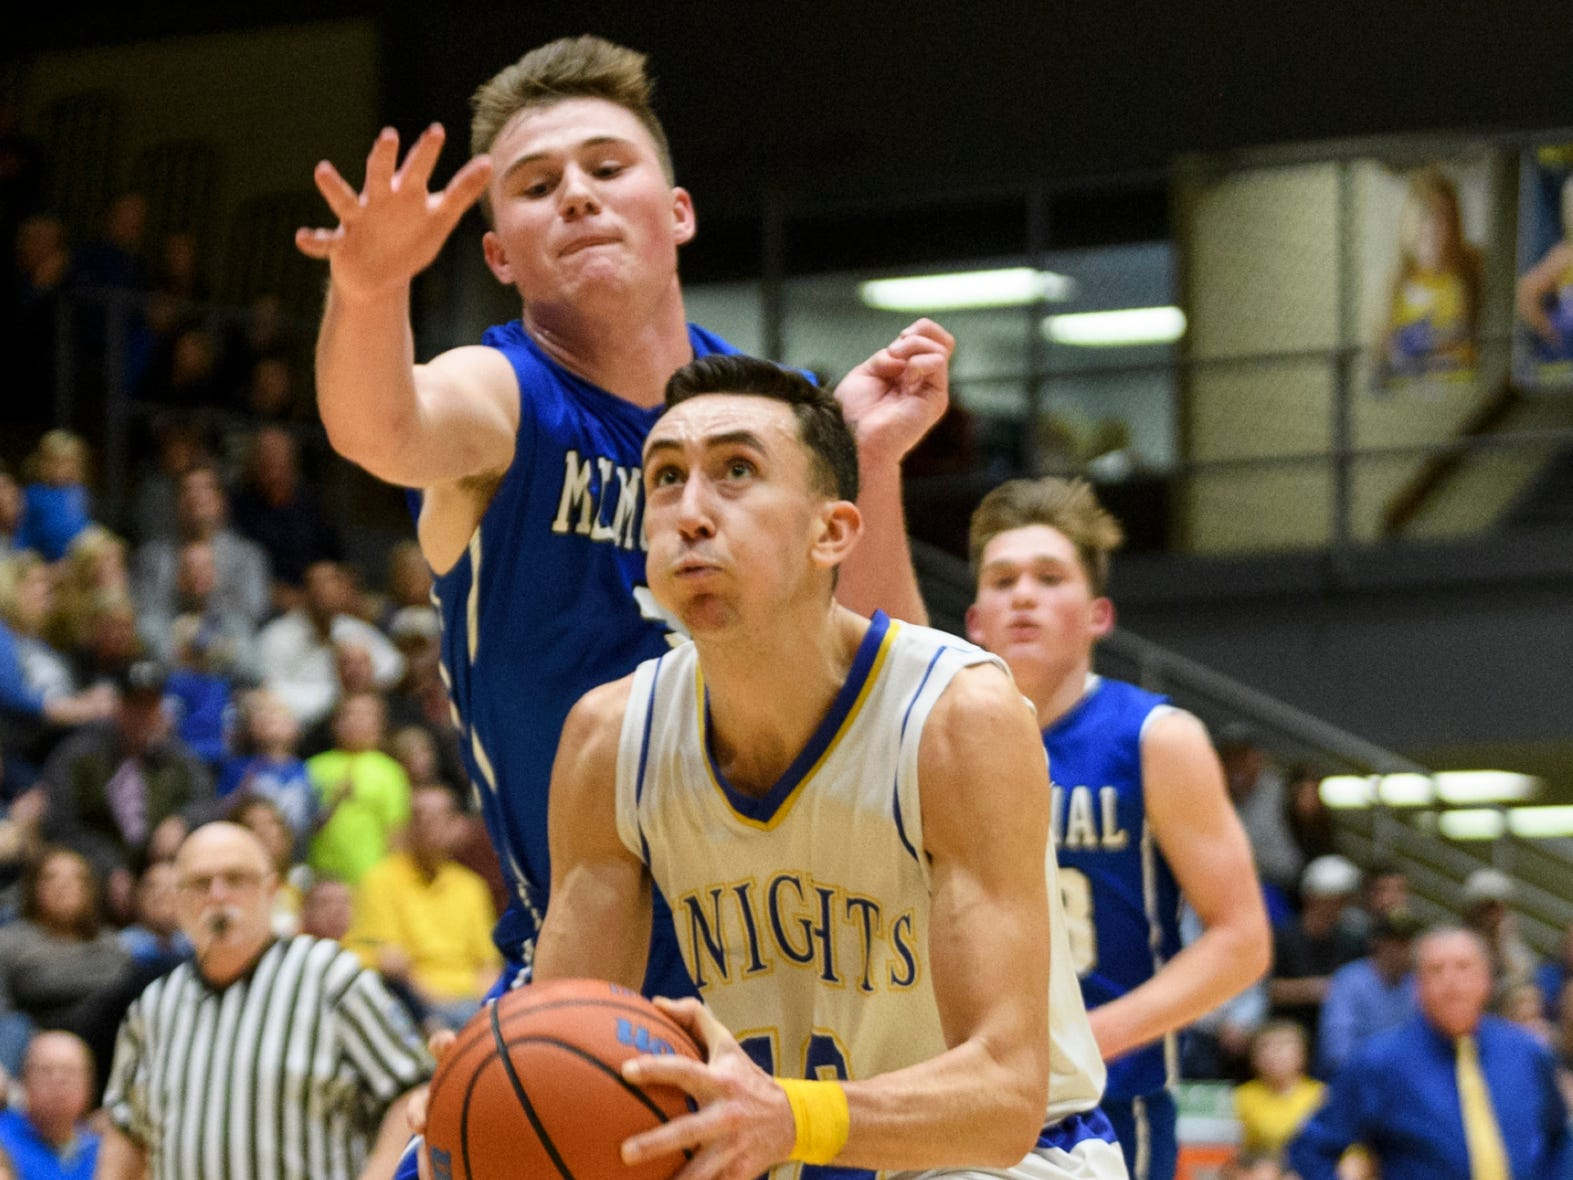 Memorial's Branson Combs (3) attempts to stop Castle's Alex Hemenway (12) from advancing to the net during the second quarter at Castle High School in Newburgh, Ind., Friday, Jan. 4, 2019. The Knights defeated the Tigers, 72-43.